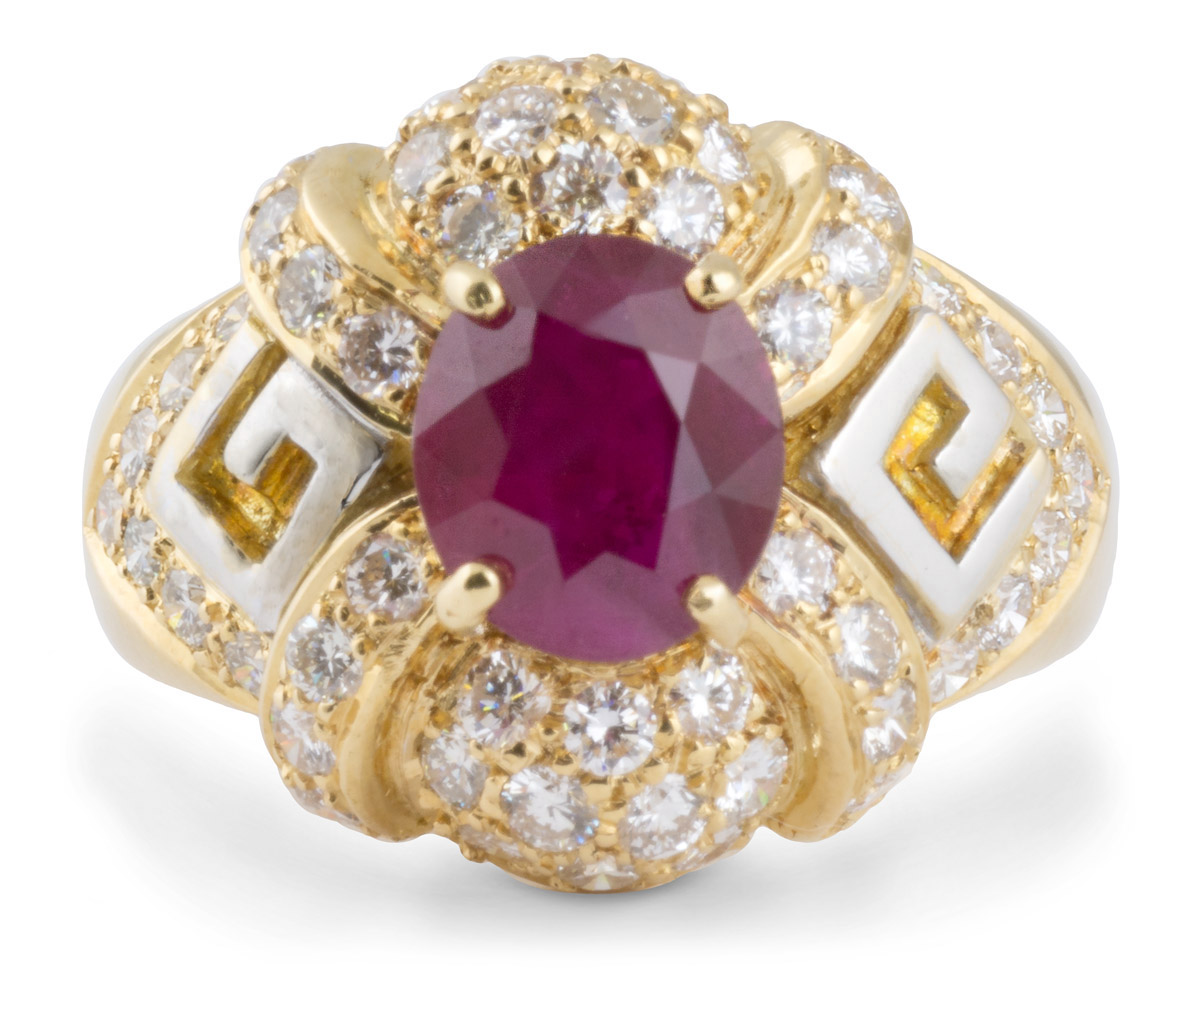 Ruby Cocktail Ring with Diamond Accents